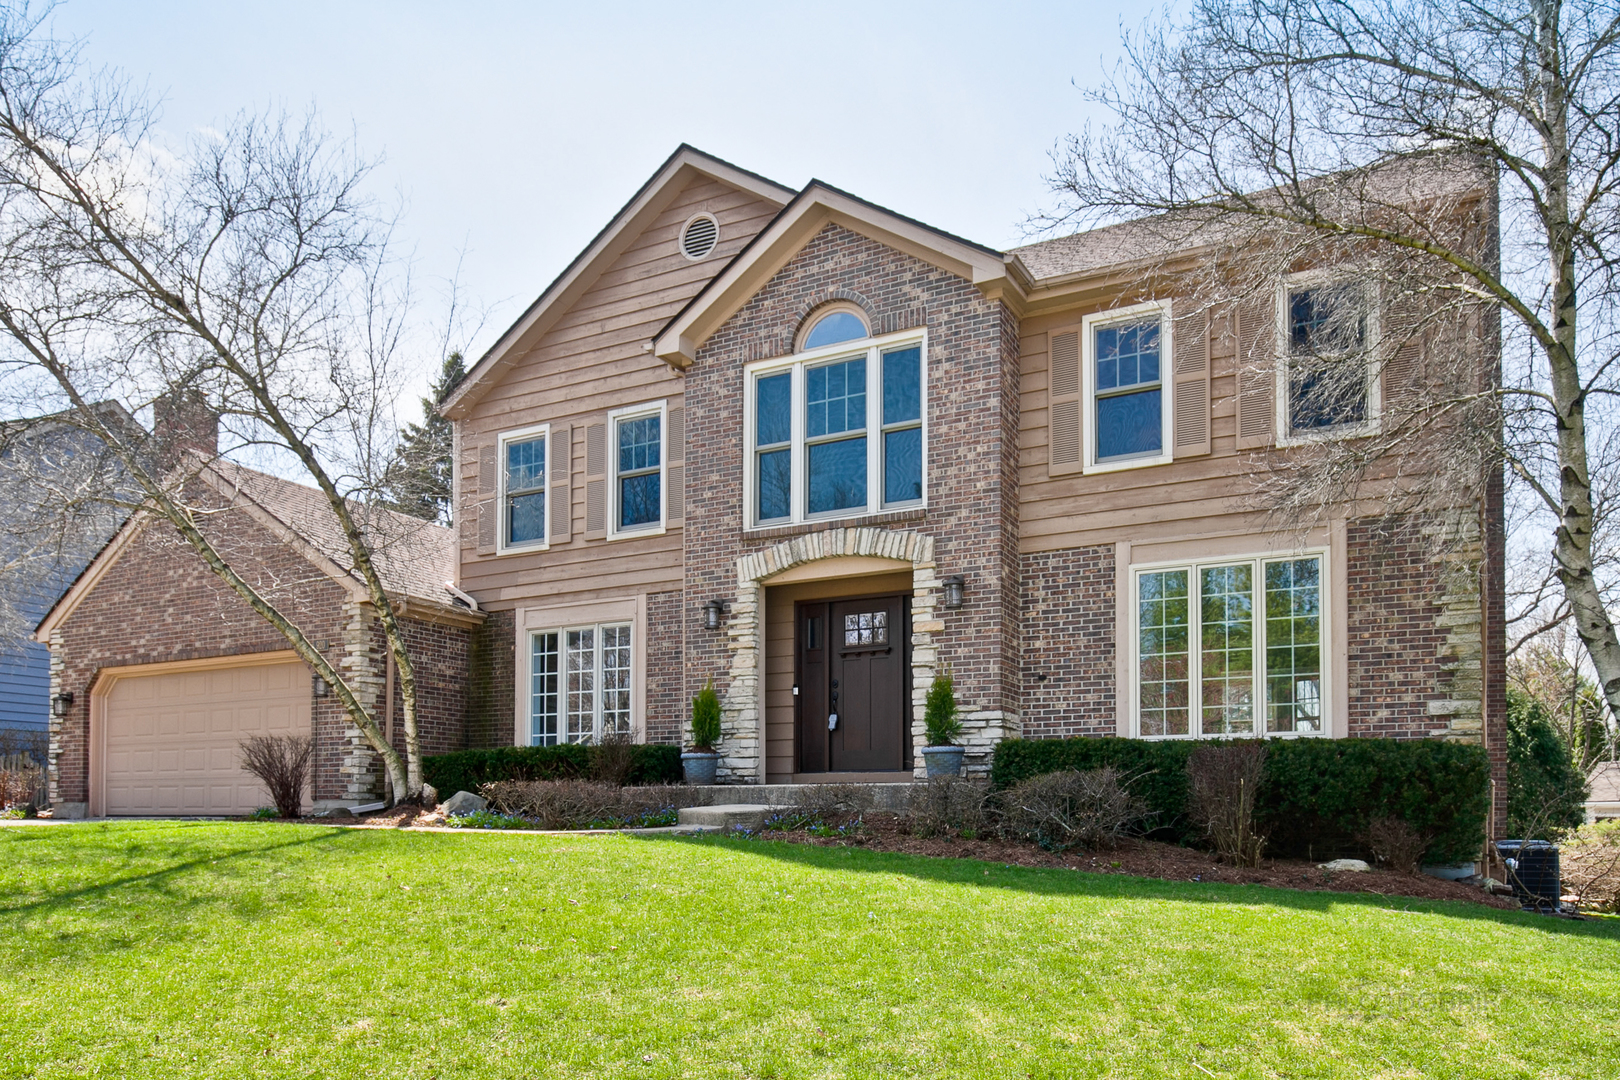 Photo for 920 Crabtree Lane, Cary, IL 60013 (MLS # 10610944)